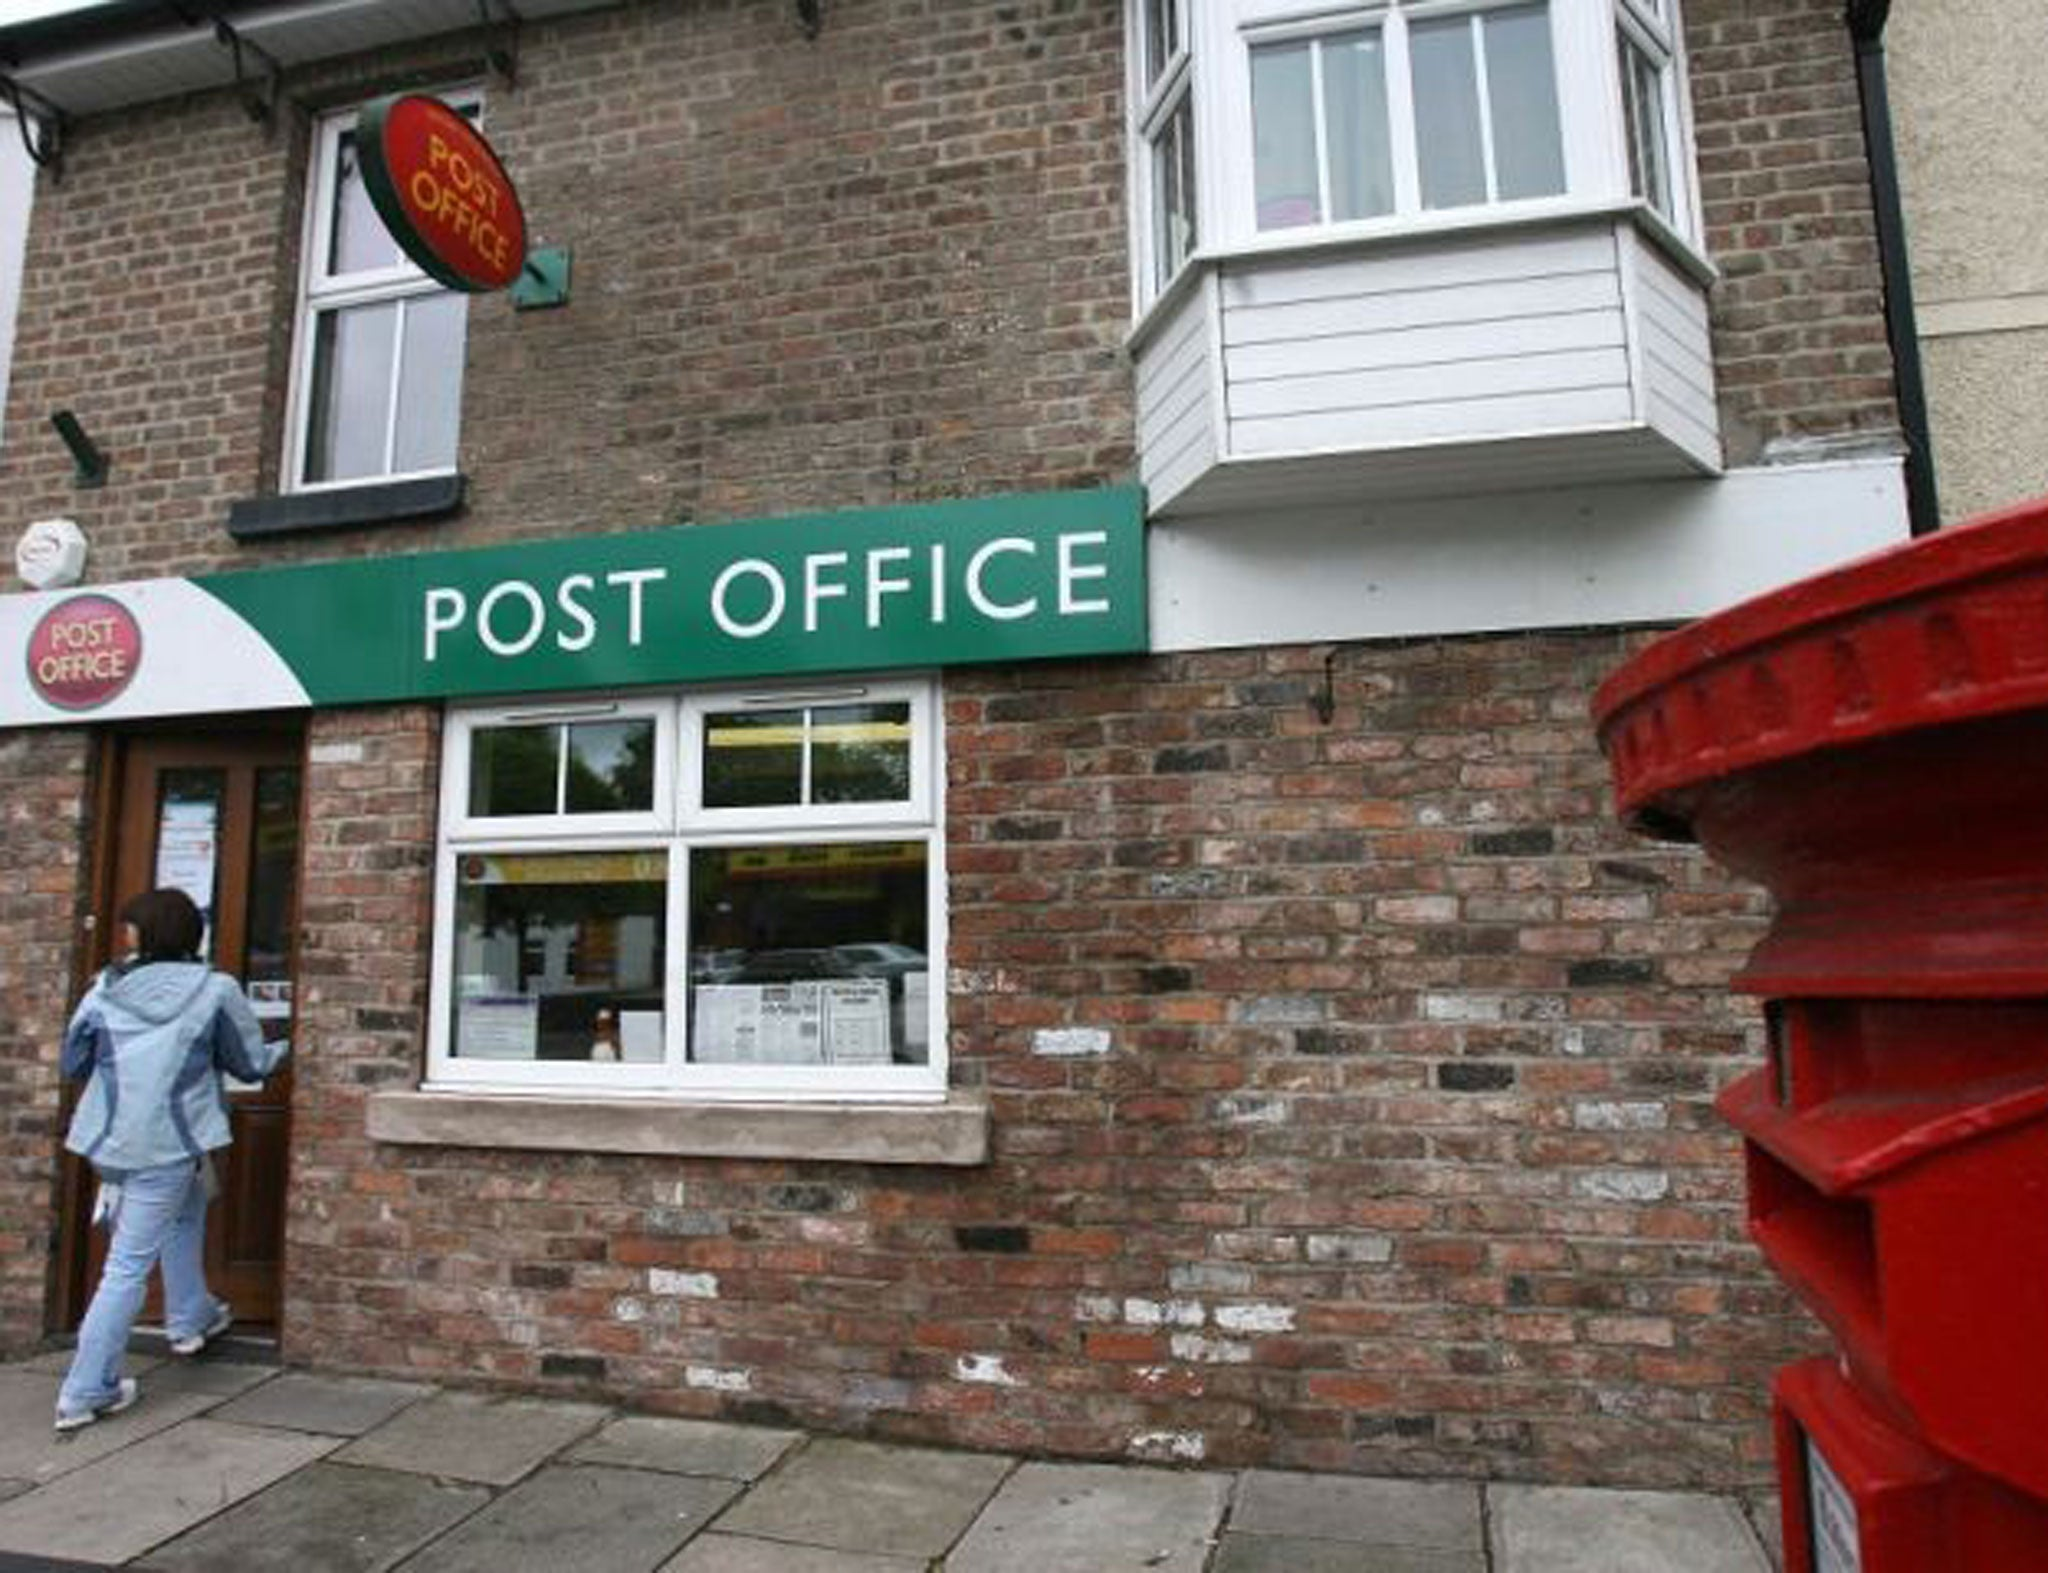 Post Office Workers Set To Strike In Long running Row Over